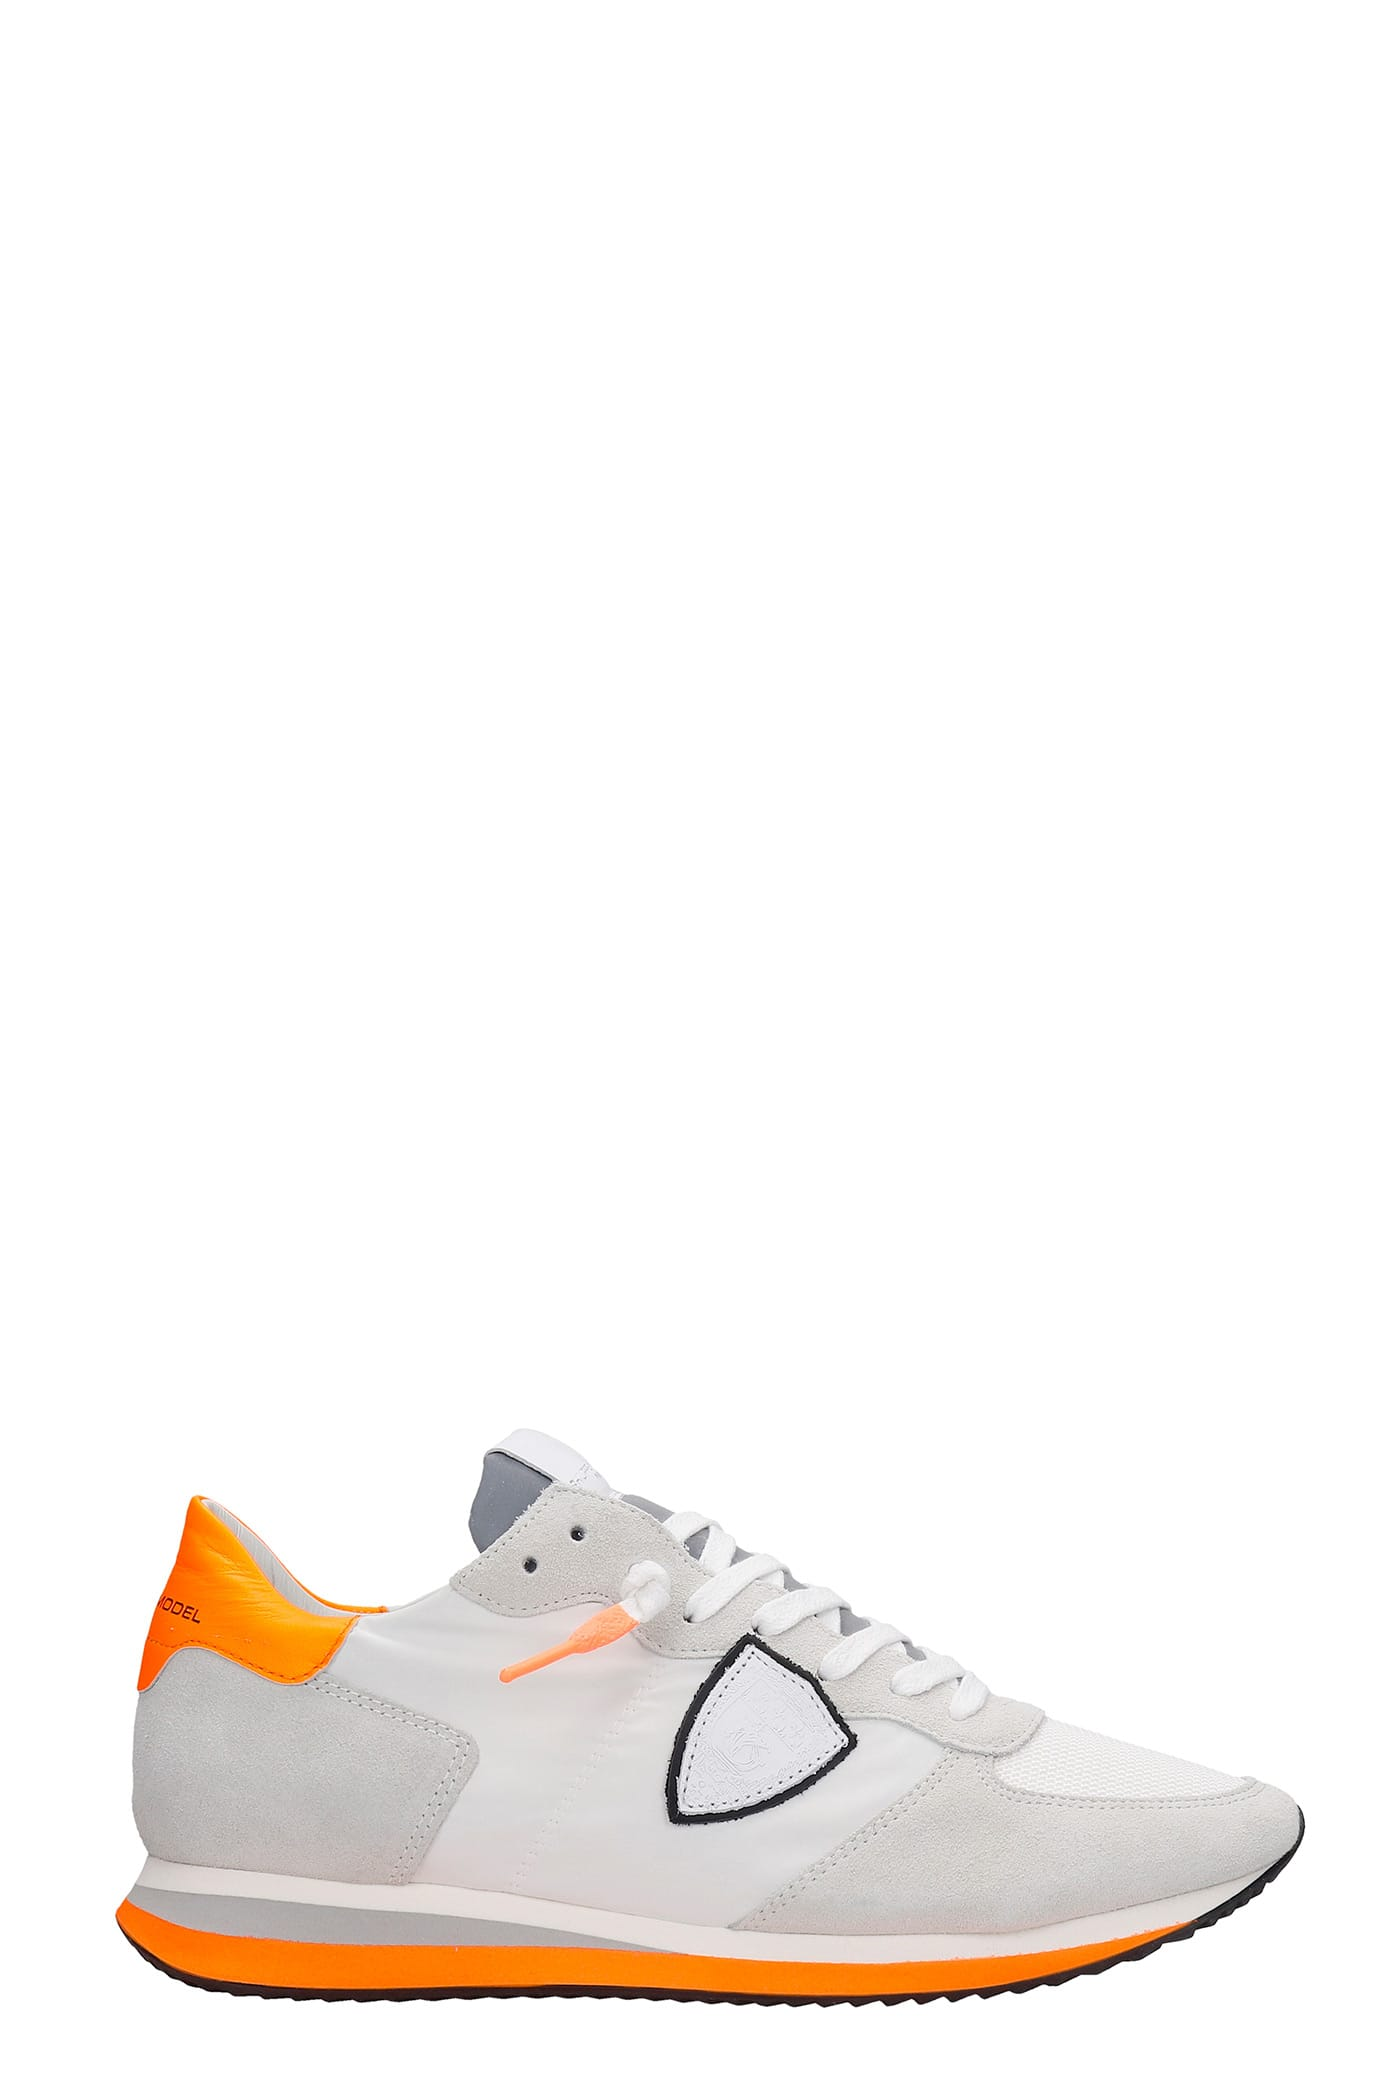 Philippe Model Suedes TRPX SNEAKERS IN WHITE SUEDE AND FABRIC